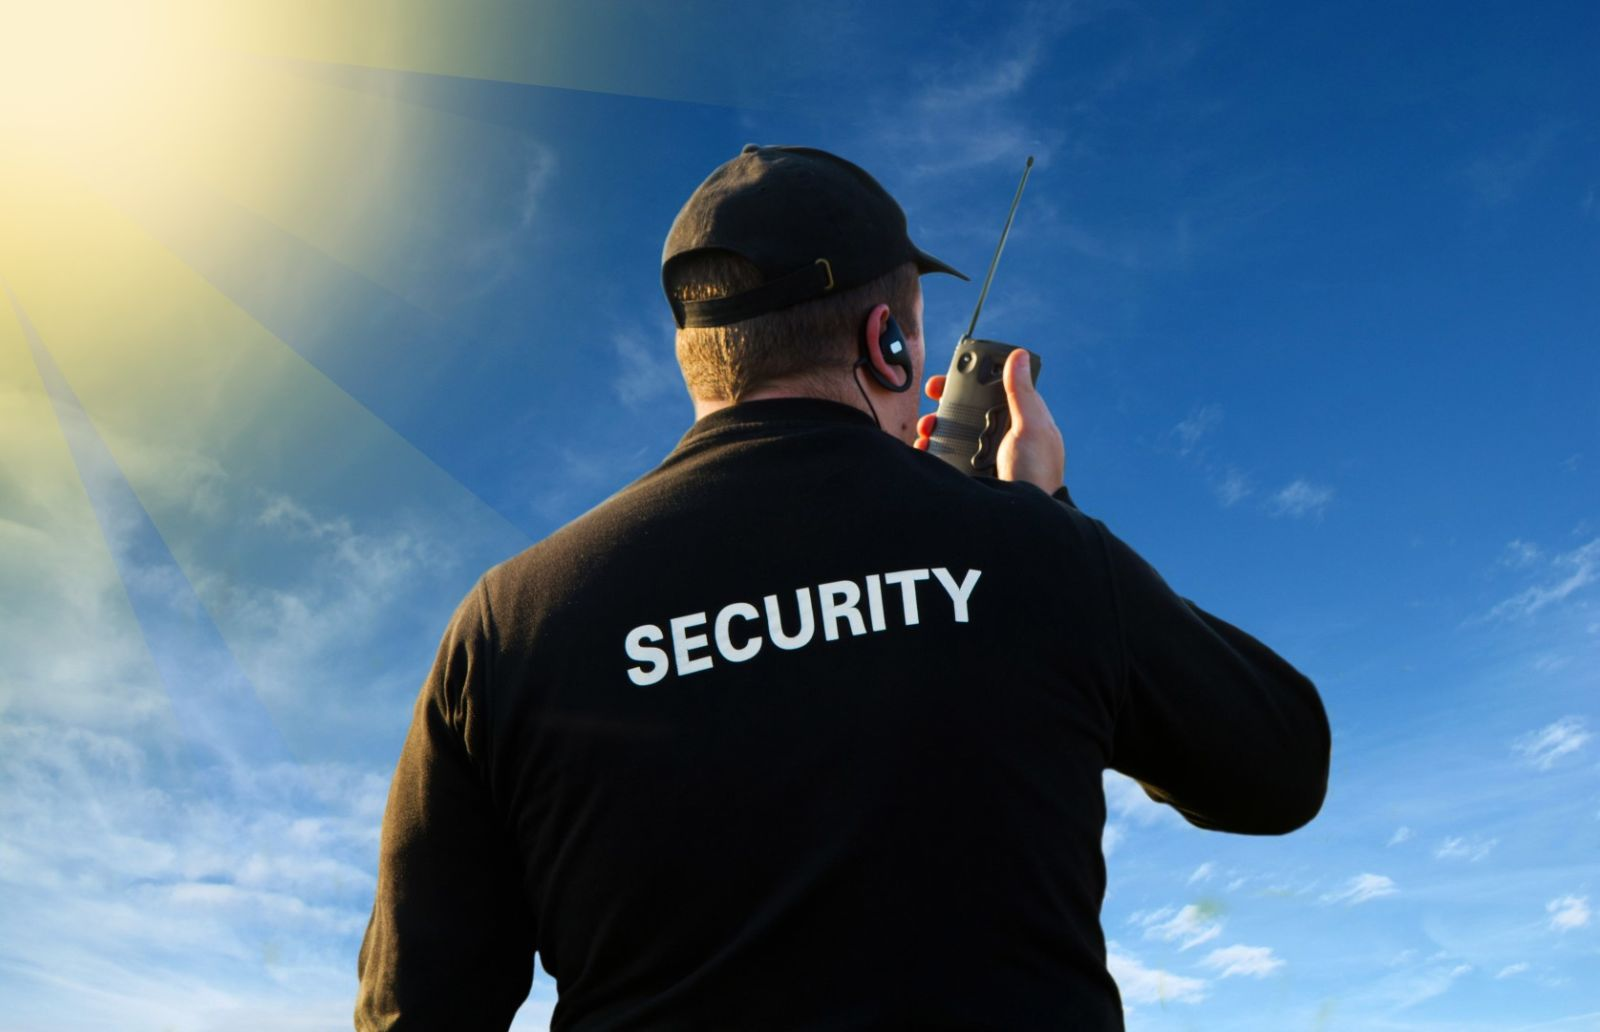 Security Guard Meaning